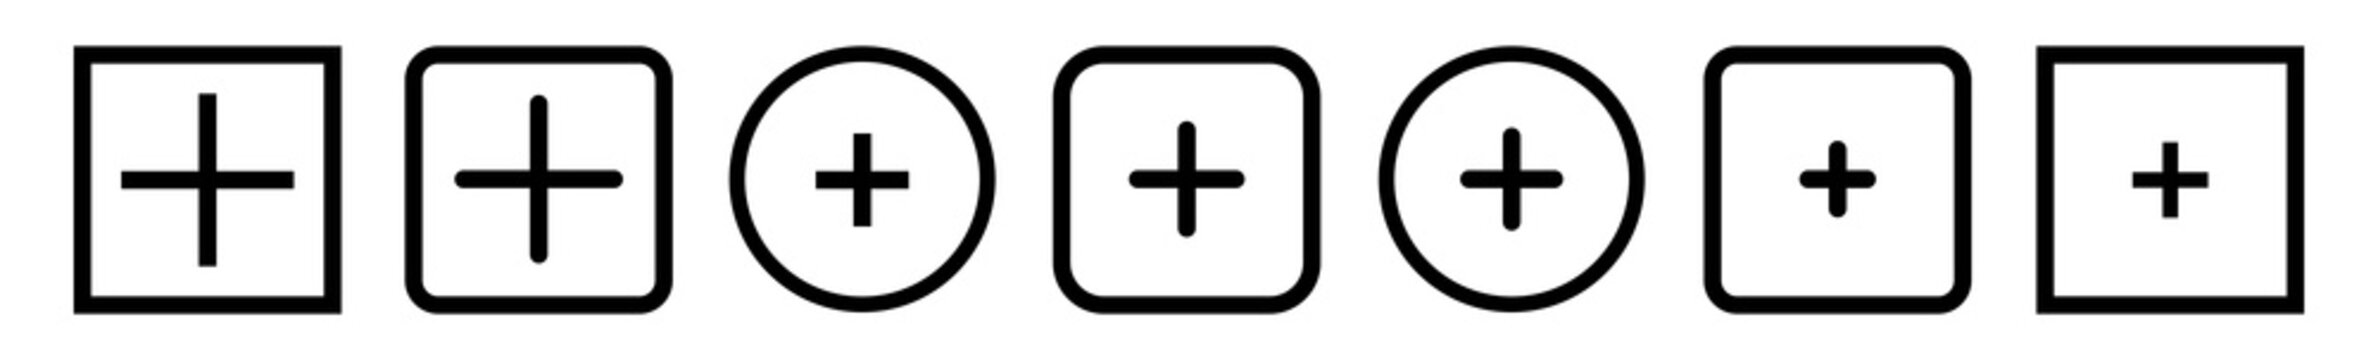 Add Plus Icon Black   Addition Buttons   Positive Symbol   Additional Logo   Cross Icons Sign   Isolated   Variations